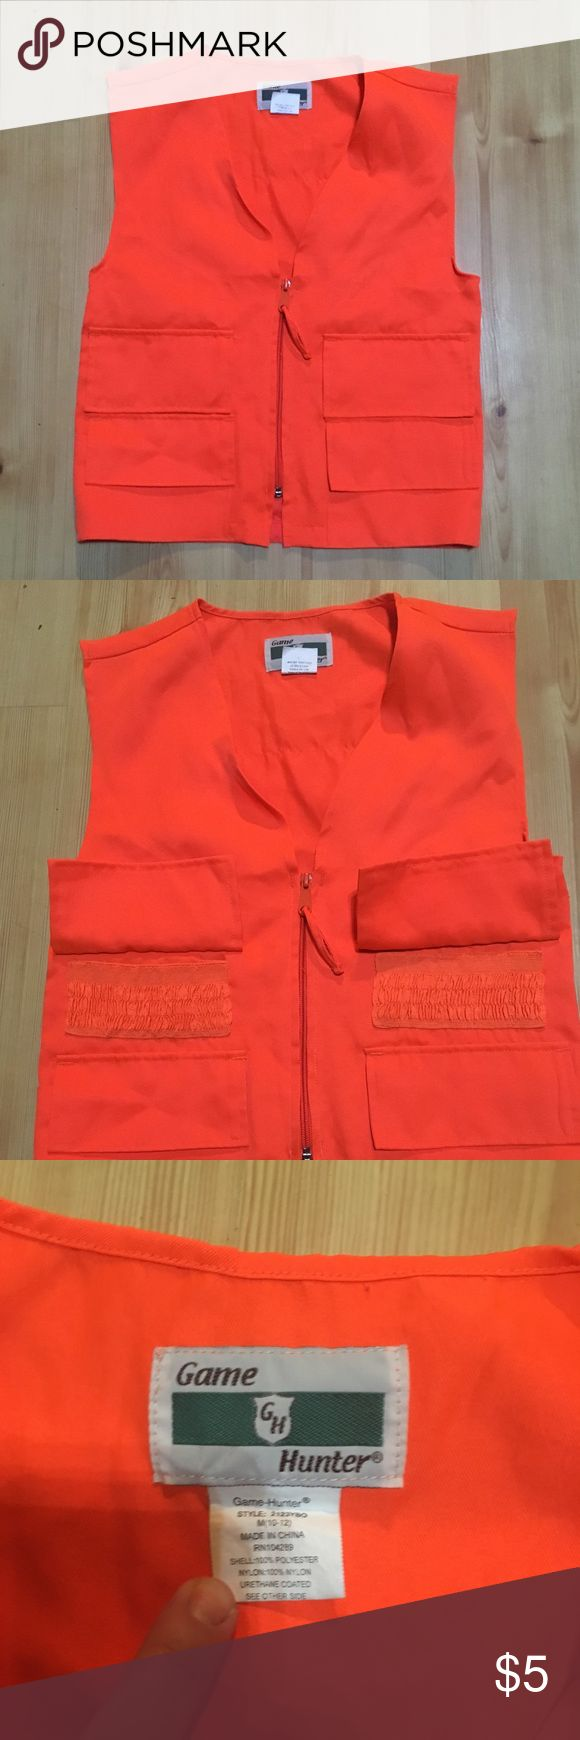 Kids Orange Hunting Vest Game Hunter brand orange hunting vest. Great condition. Has elasticized holders for ammo and pockets for carrying snacks, etc., in both sides of front. Zipper closure. Make sure your child is highly visible when hunting with this bright orange vest! Size M (8-10). Unisex. Non smoking home. Bundle two or more items and save on shipping and receive a discount! Game Hunter Jackets & Coats Vests